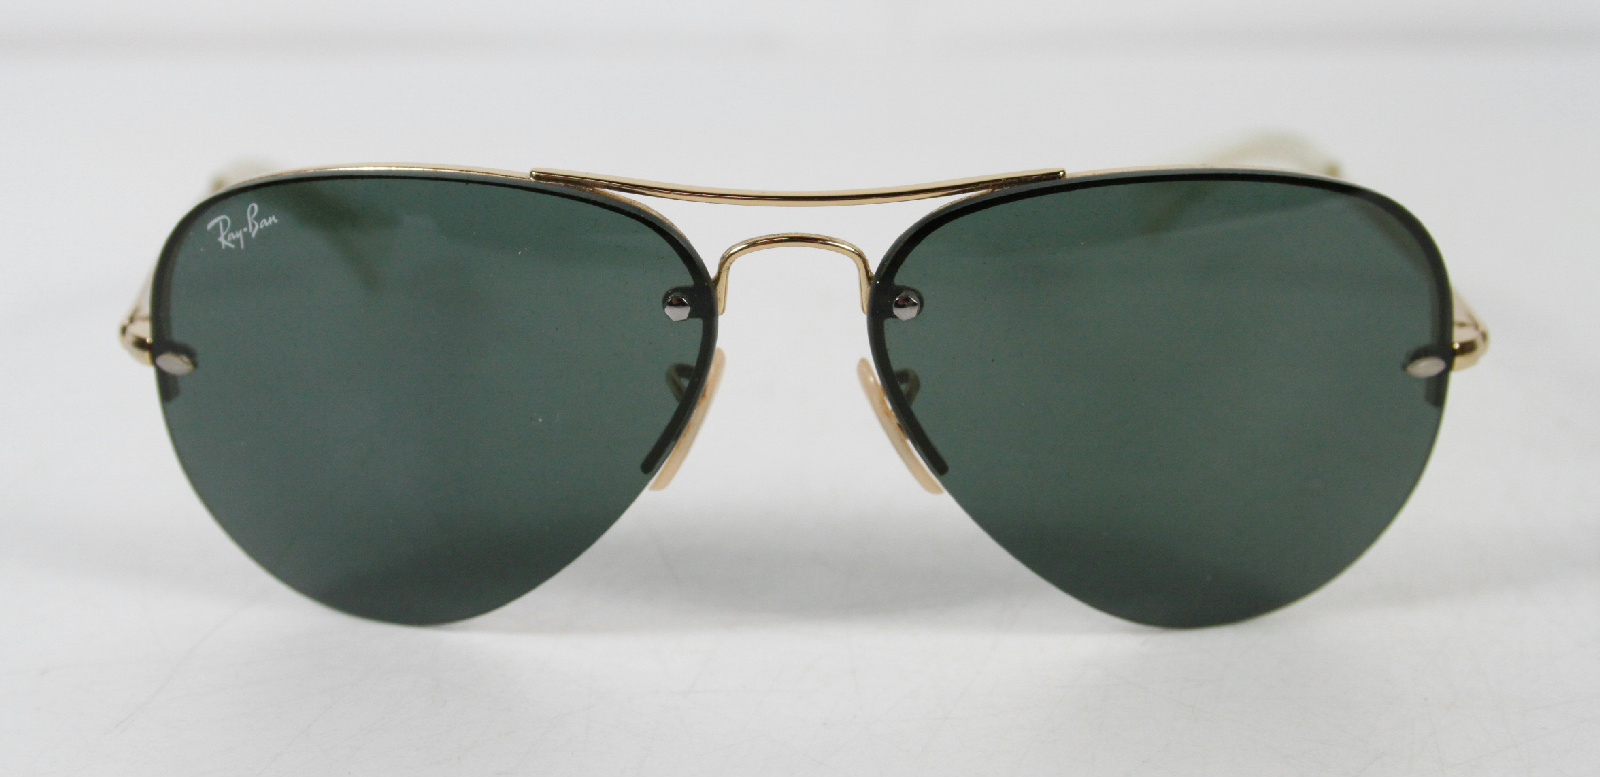 Gold Frame Aviator Sunglasses : Ray-Ban RB3449 Gold Frame Blue Lens Aviator Sunglasses eBay